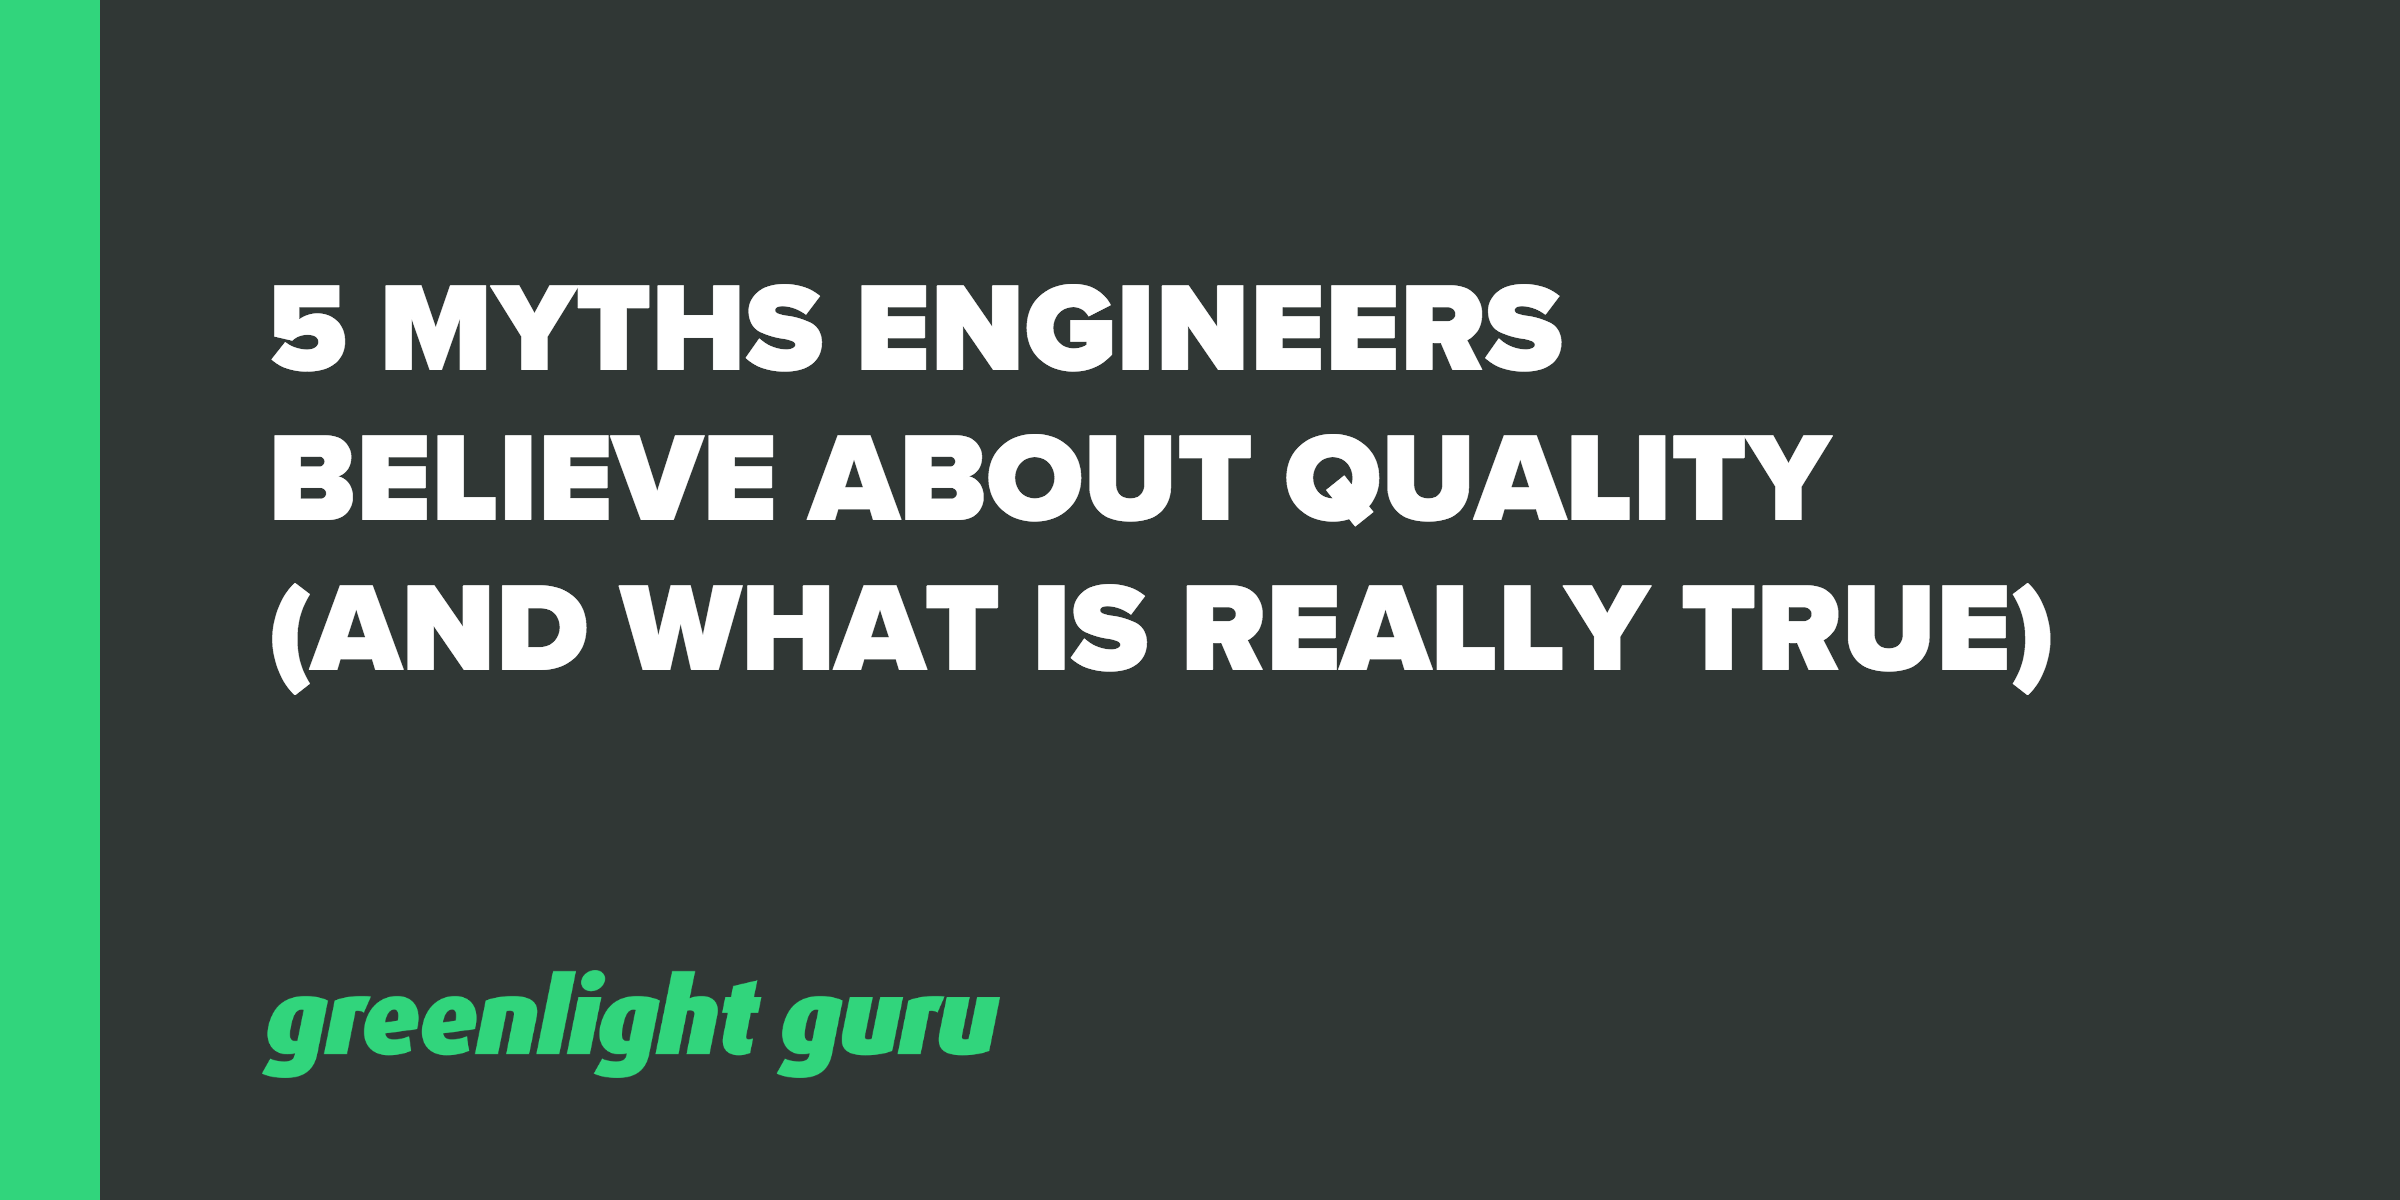 5 MYTHS ENGINEERS BELIEVE ABOUT QUALITY (AND WHAT IS REALLY TRUE)